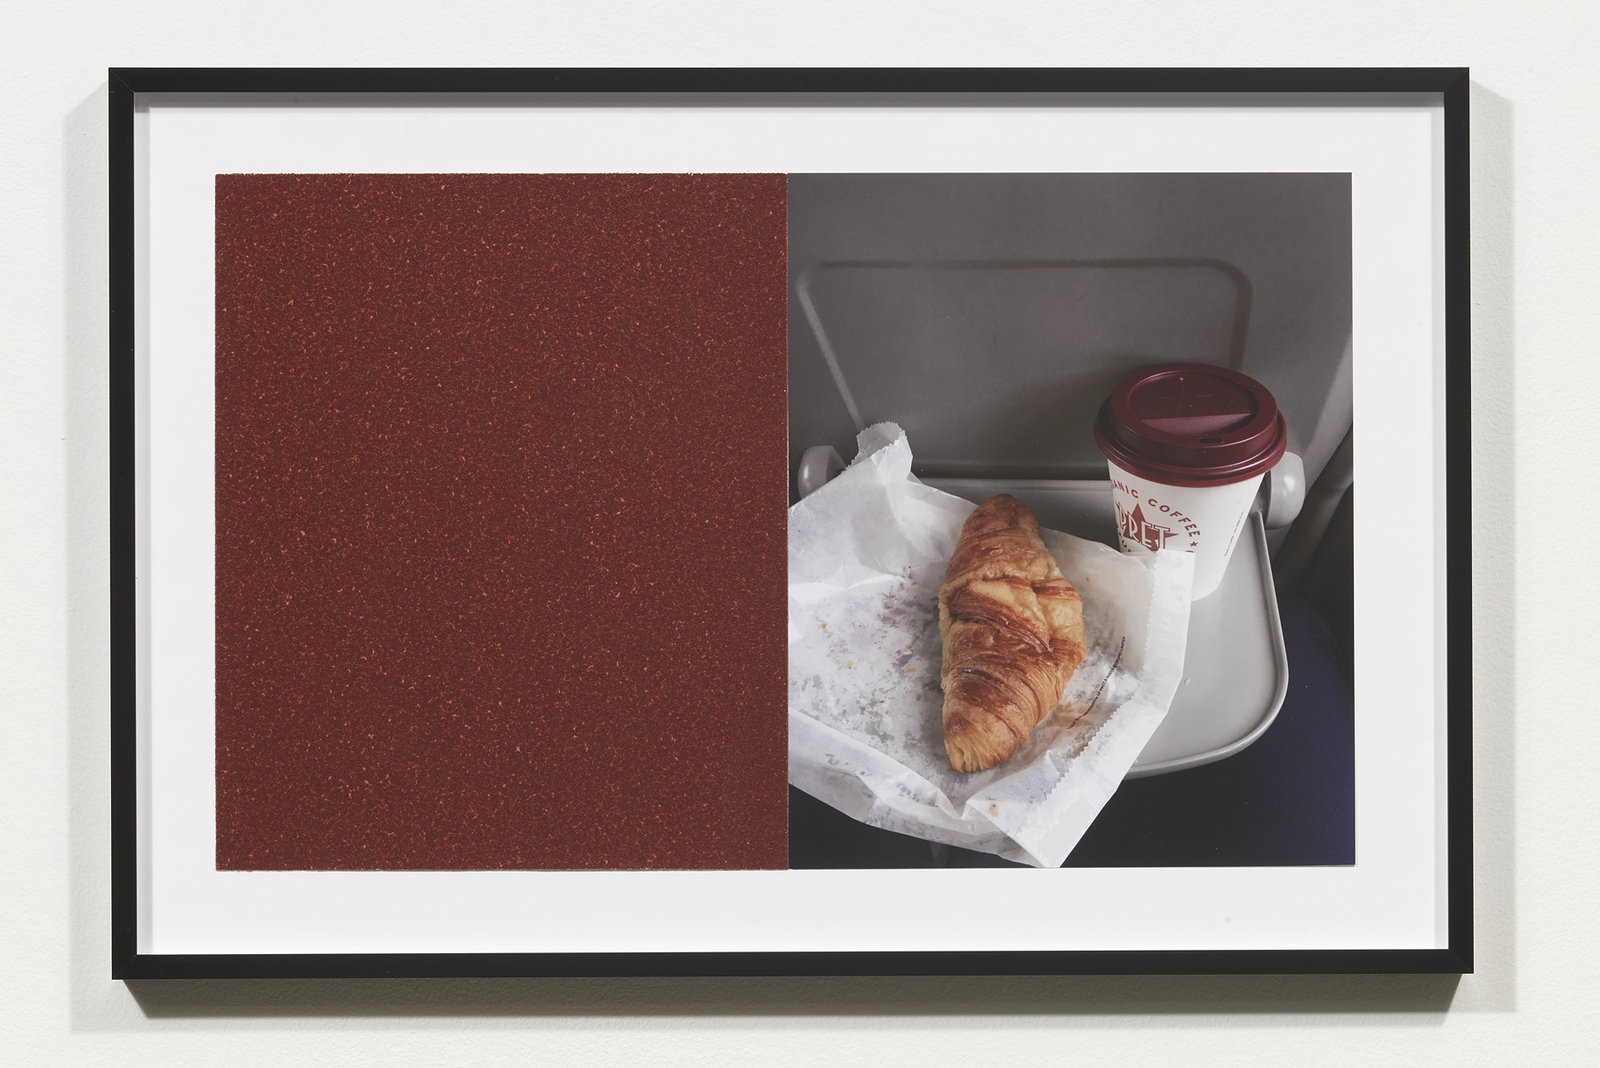 Wermers_Croissants & Architecture #4, 2016_C-print, sandpaper sheet, framed_14 3_8 x 21 1_2 in_NW00045PG